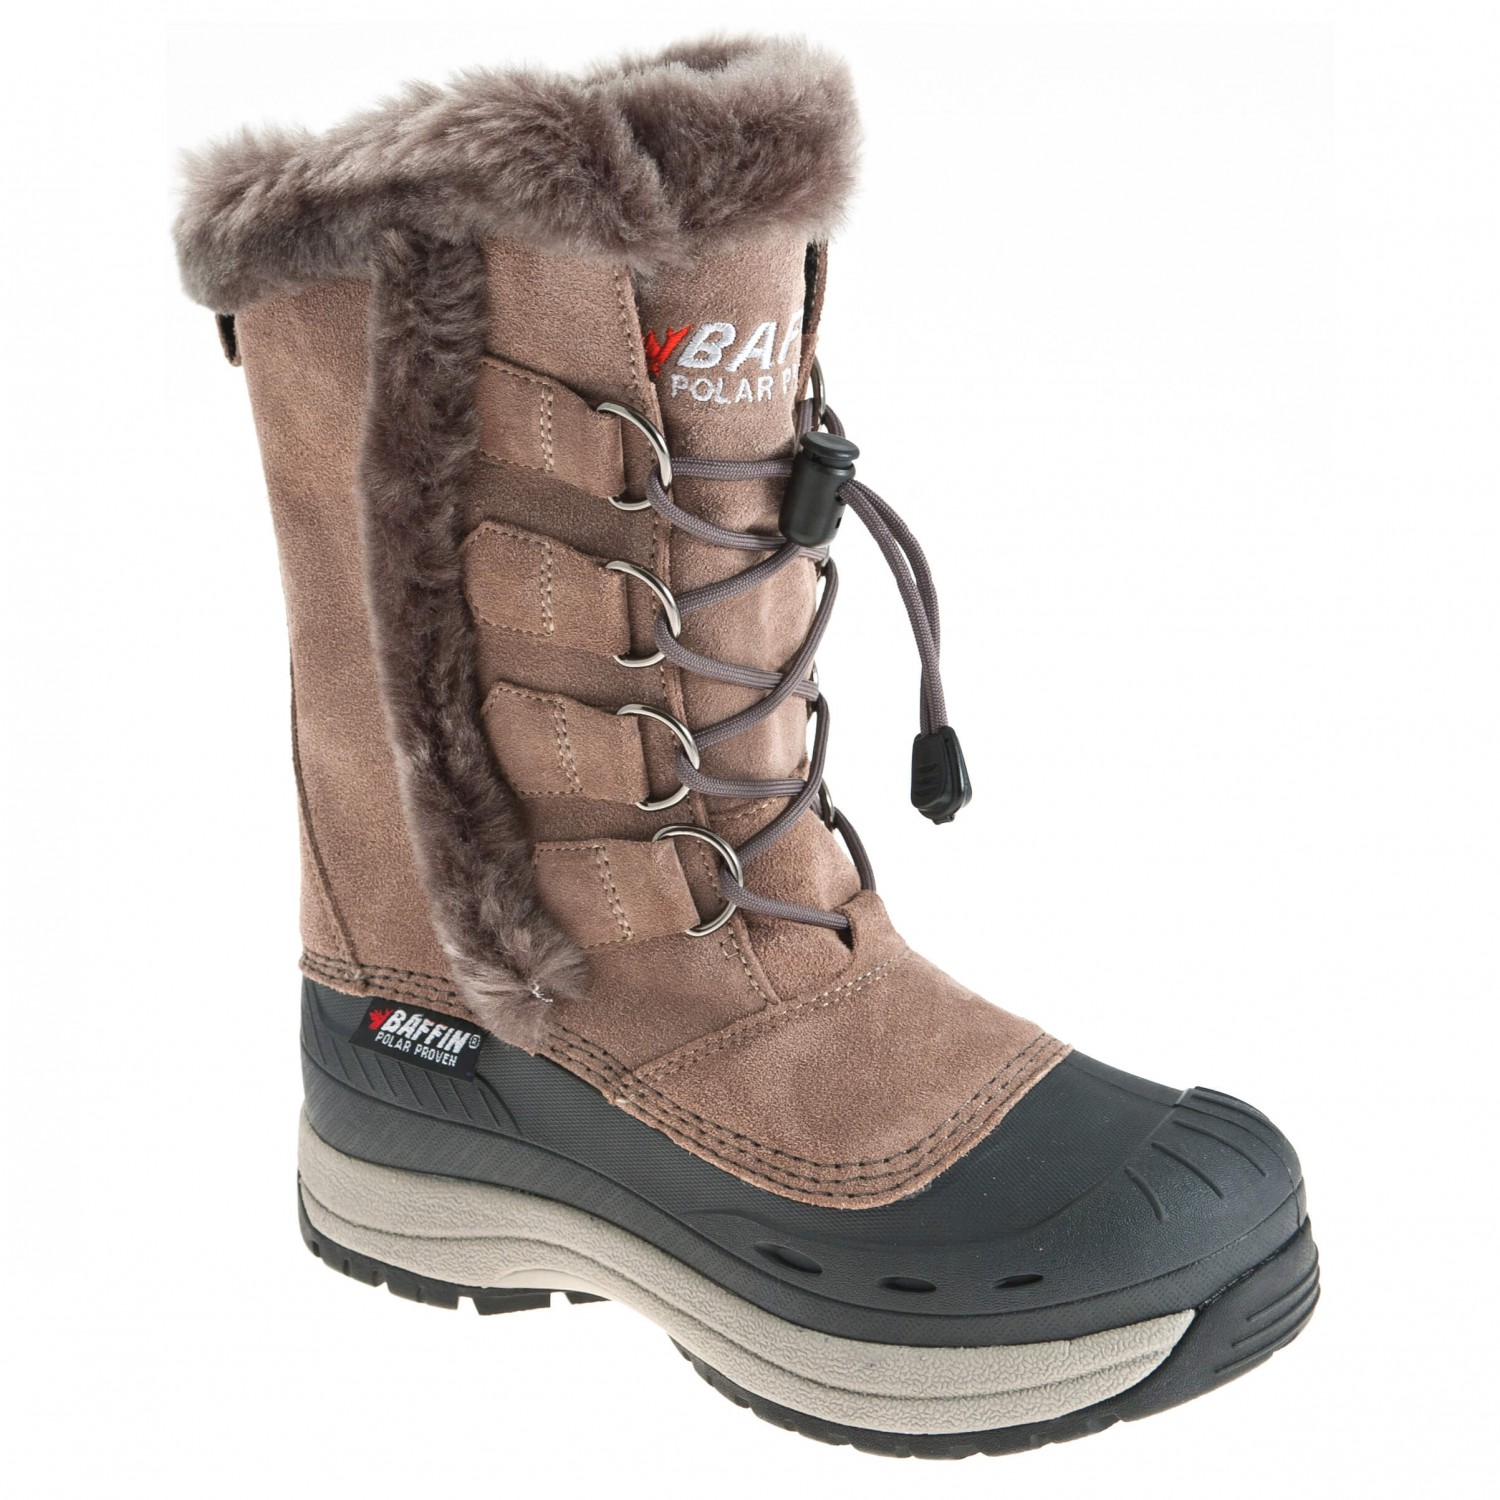 Baffin Chloe - Winter Boots Women's | Free UK Delivery